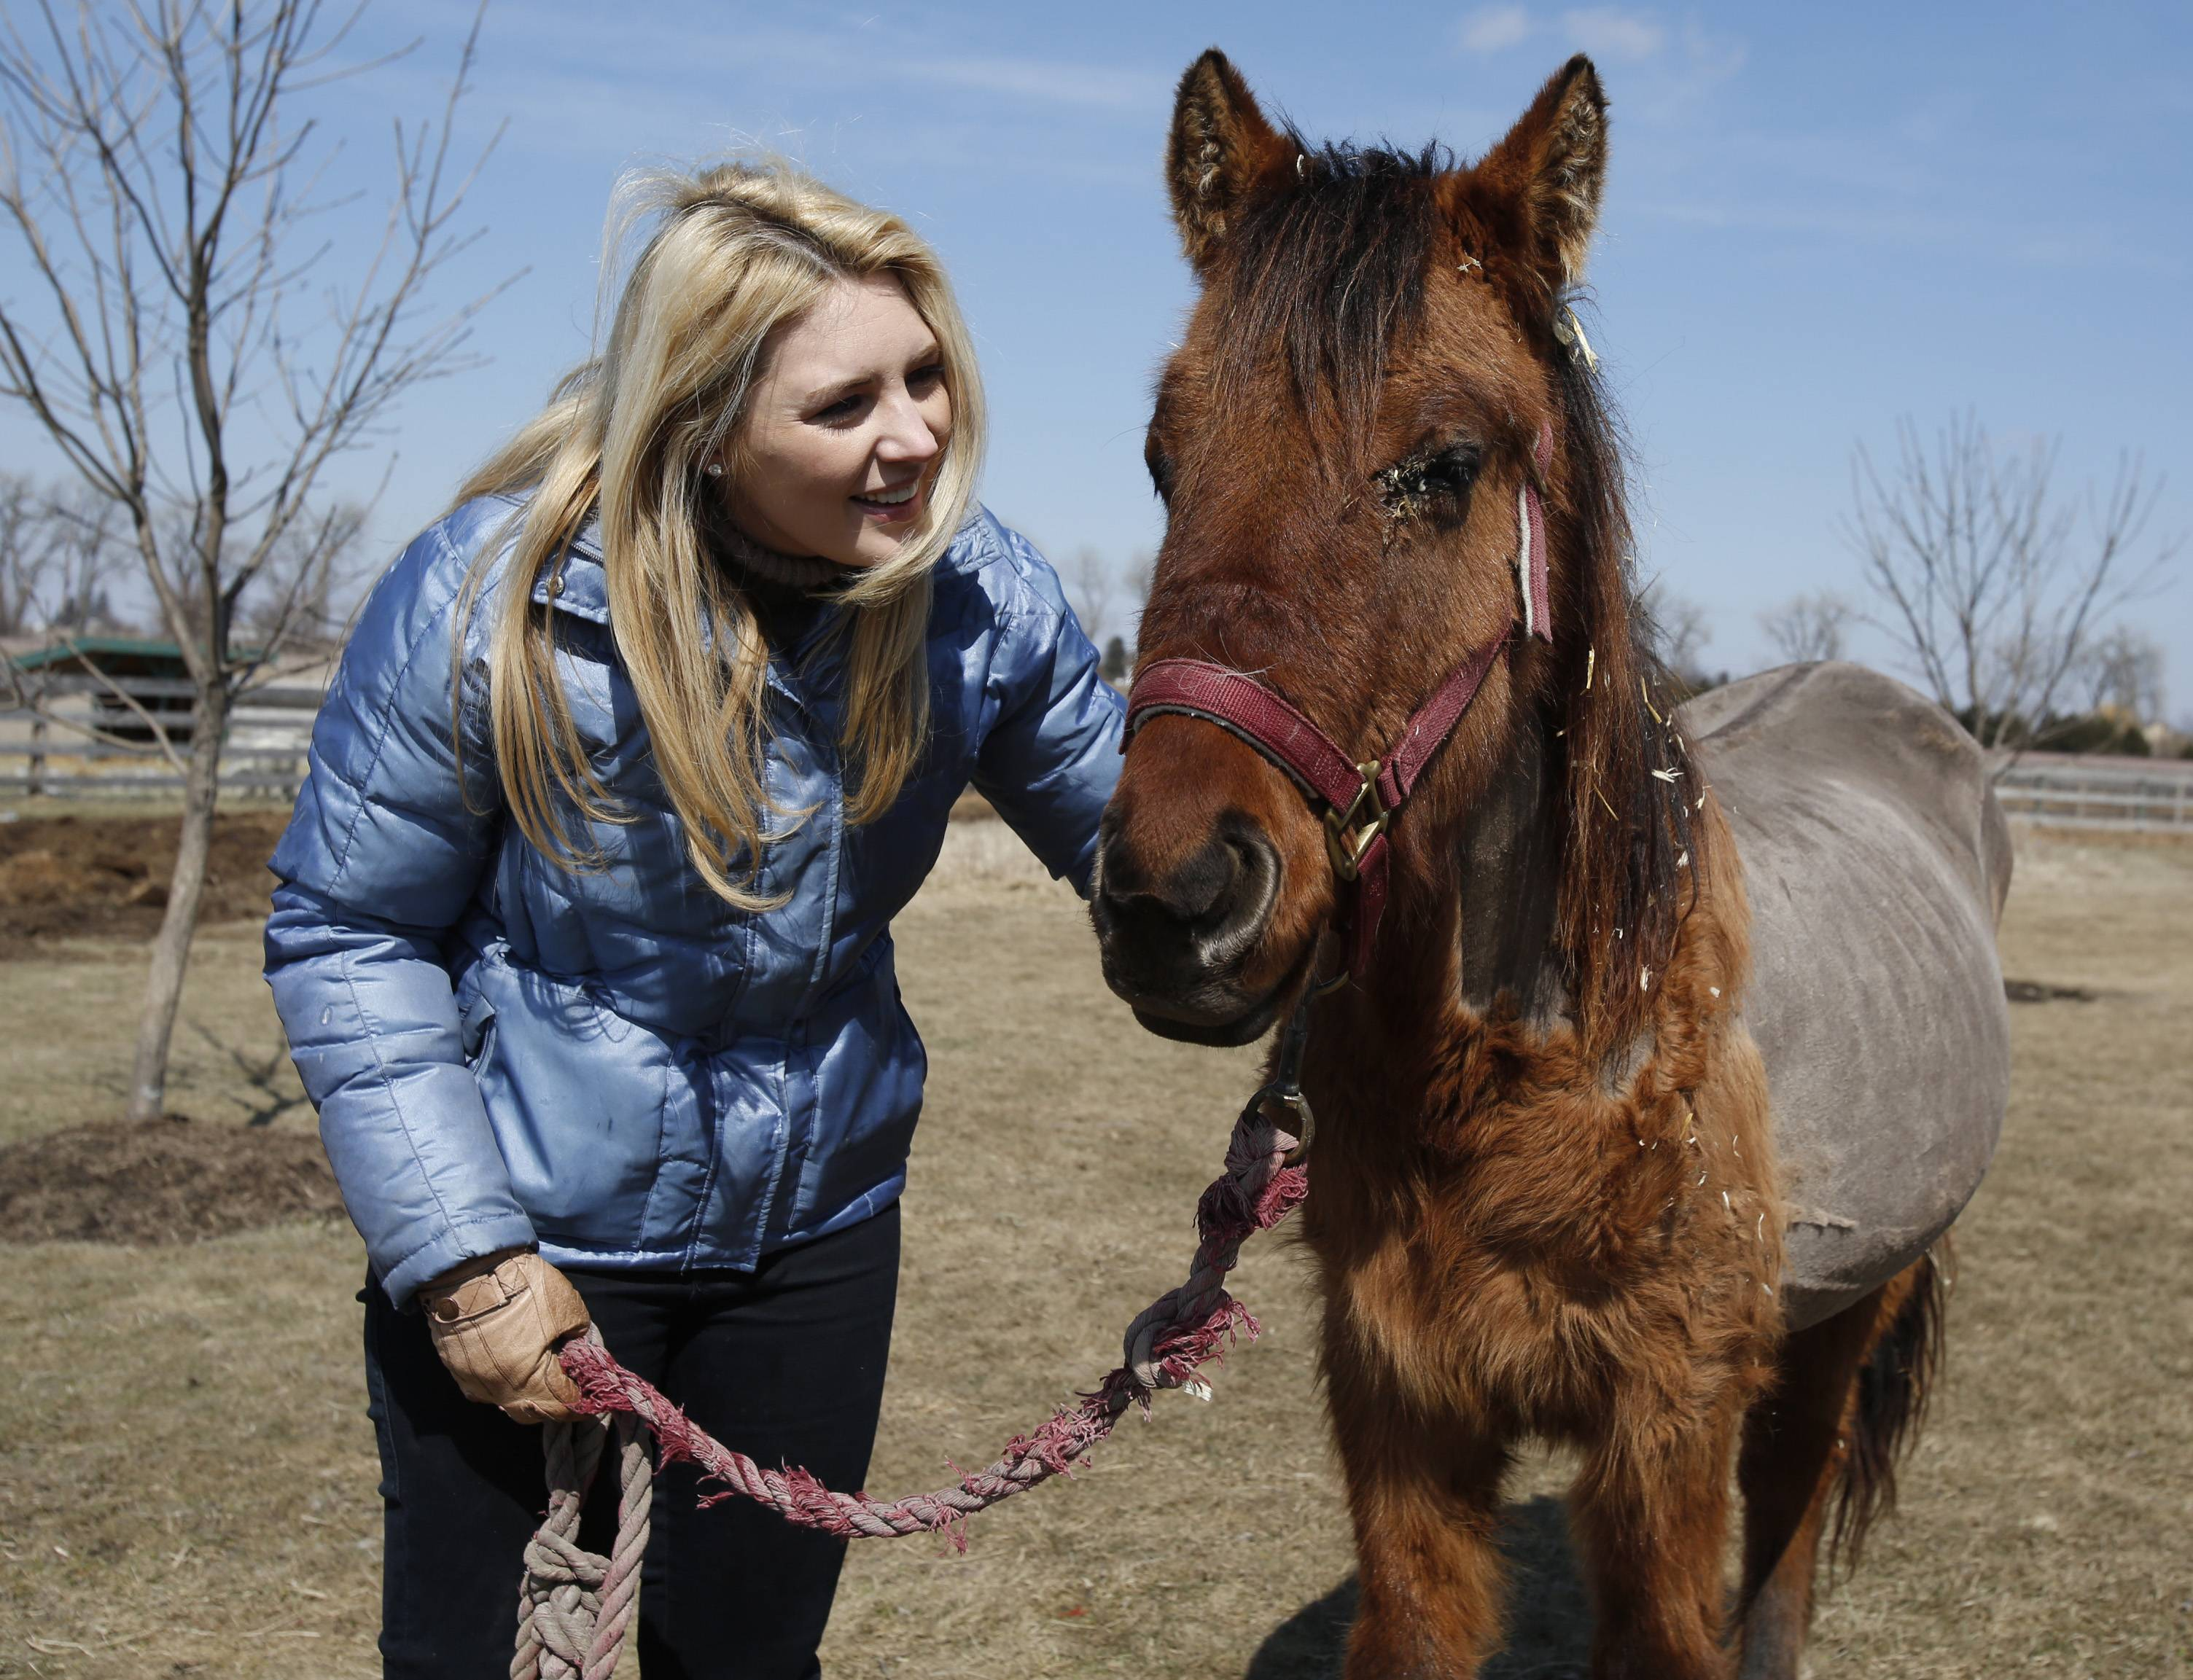 Volunteers: Animals in Kane neglect case should never go back to owner